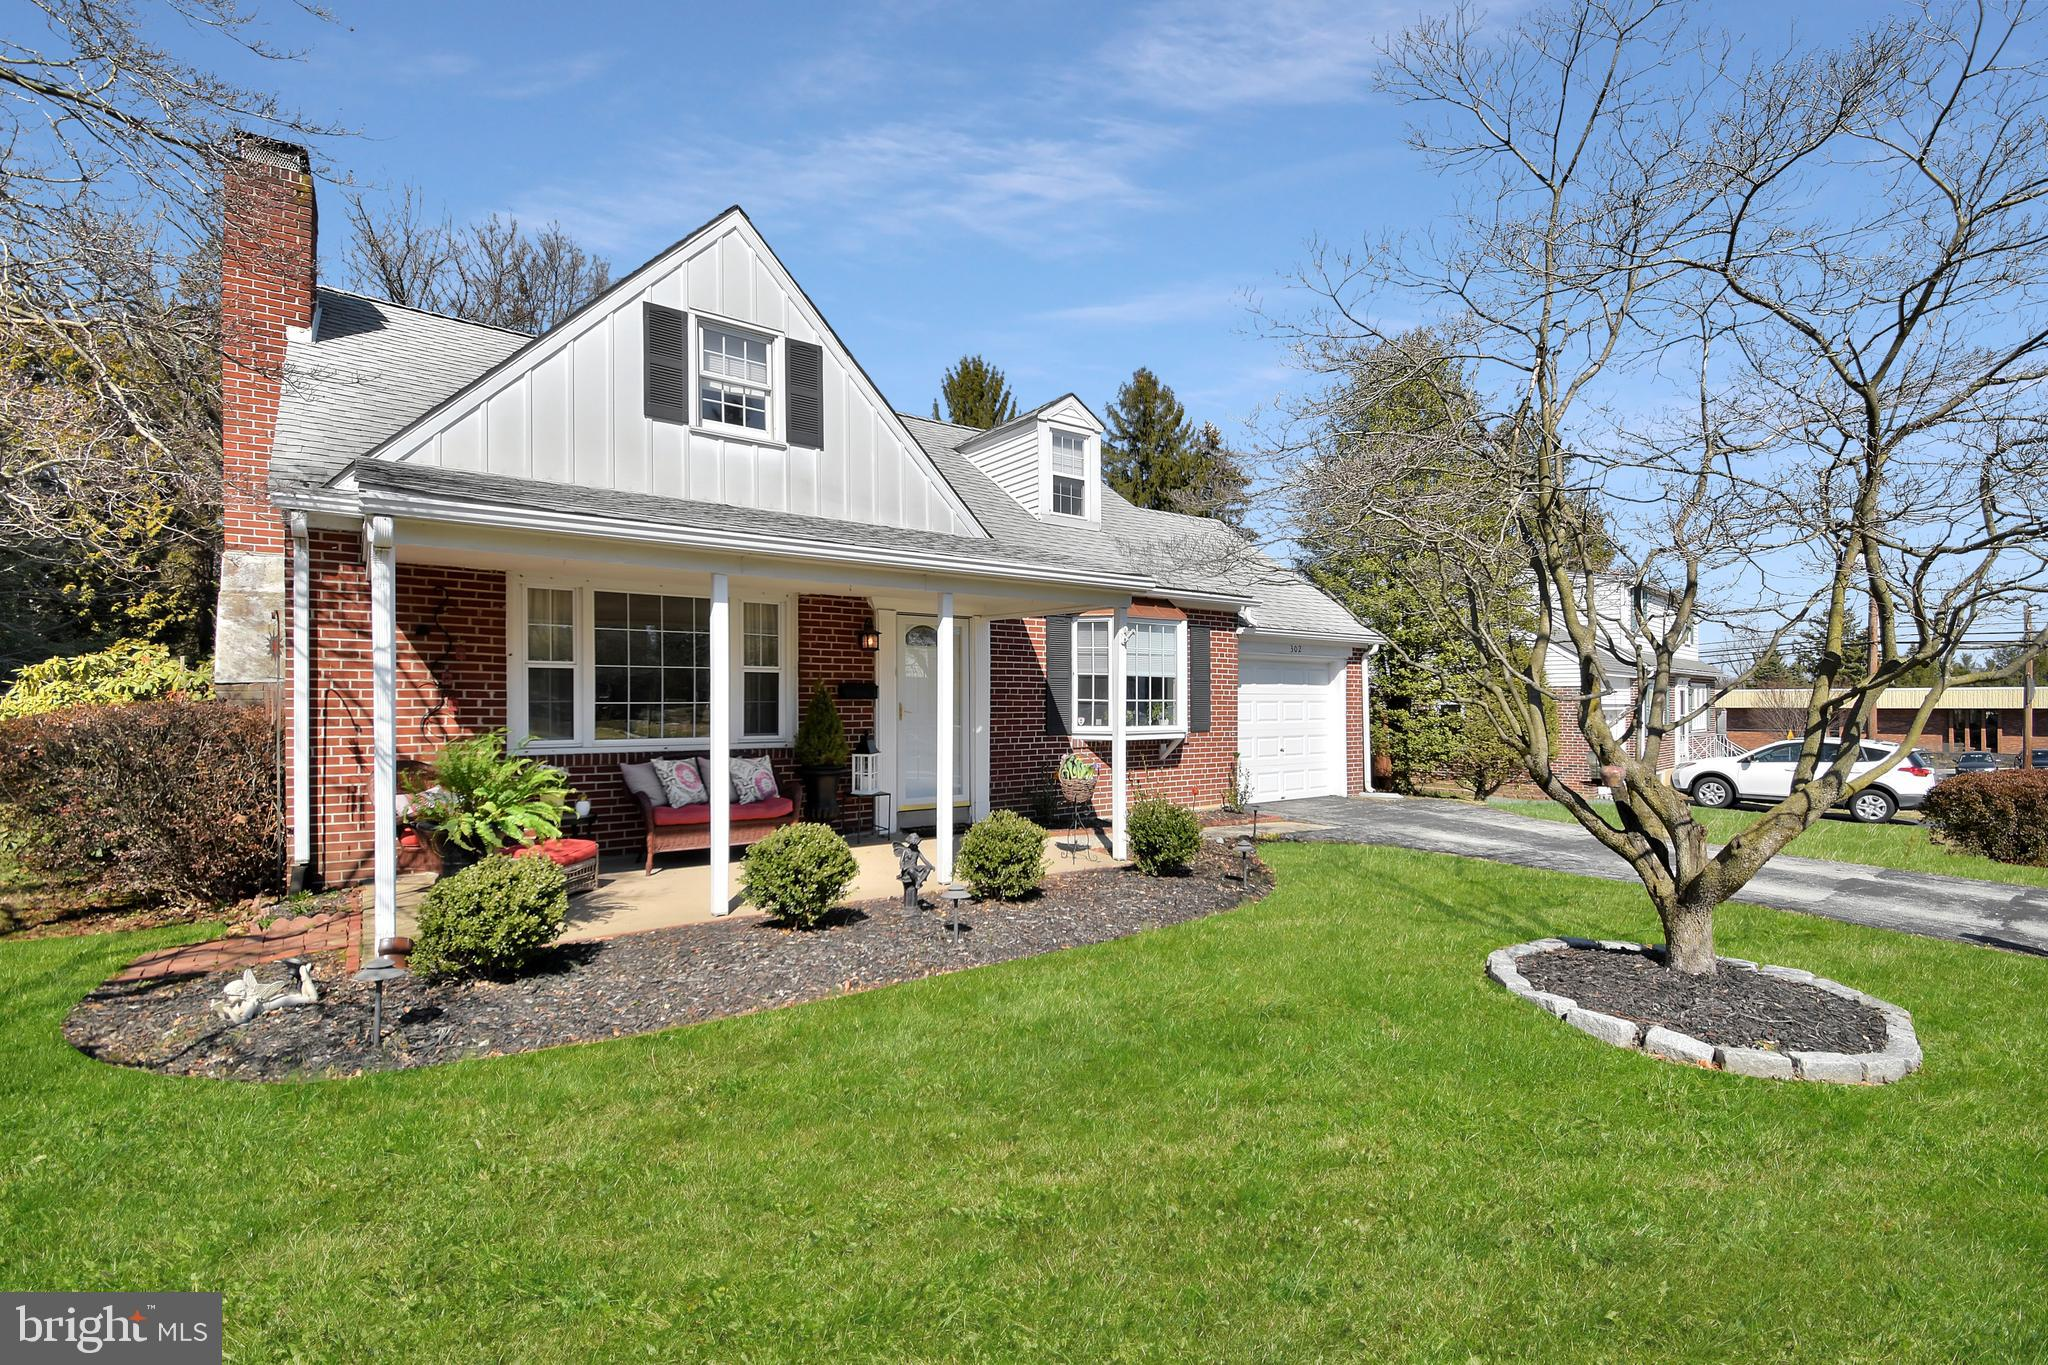 302 CANDLEWOOD ROAD, BROOMALL, PA 19008